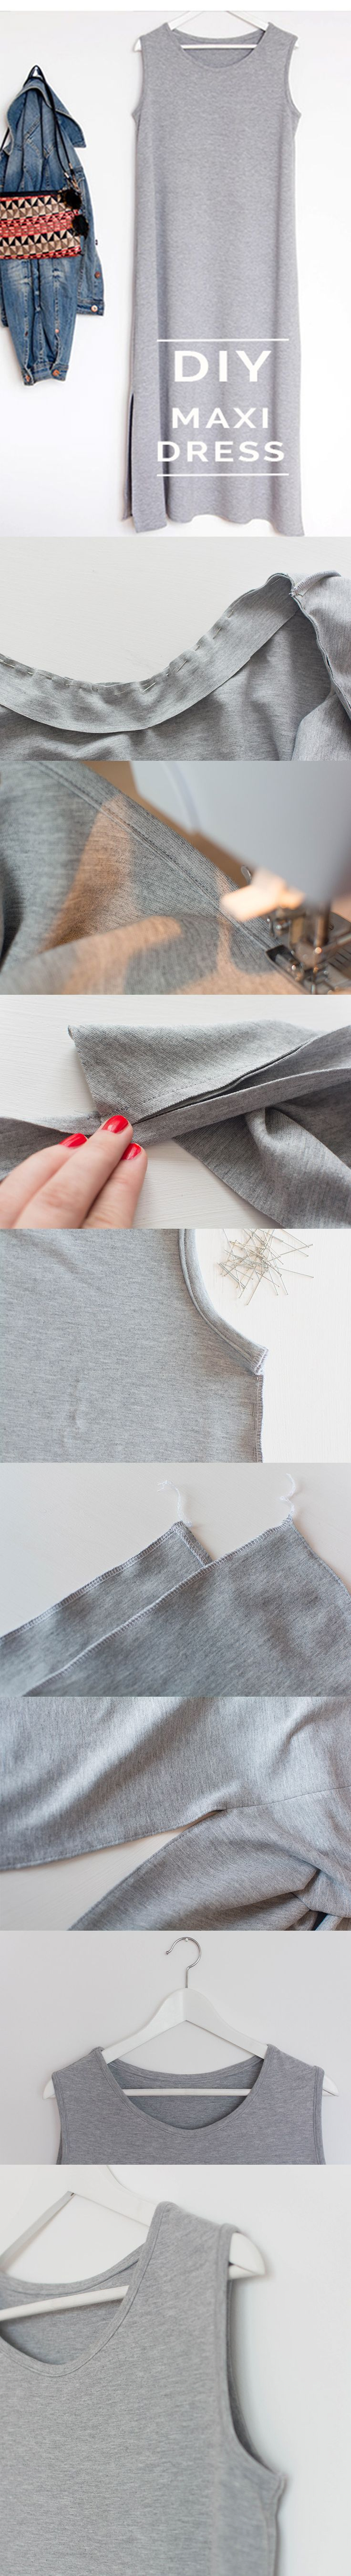 maxidress ^ DIY ^ howto ^ tutorial ^ grey ^ jerseydress